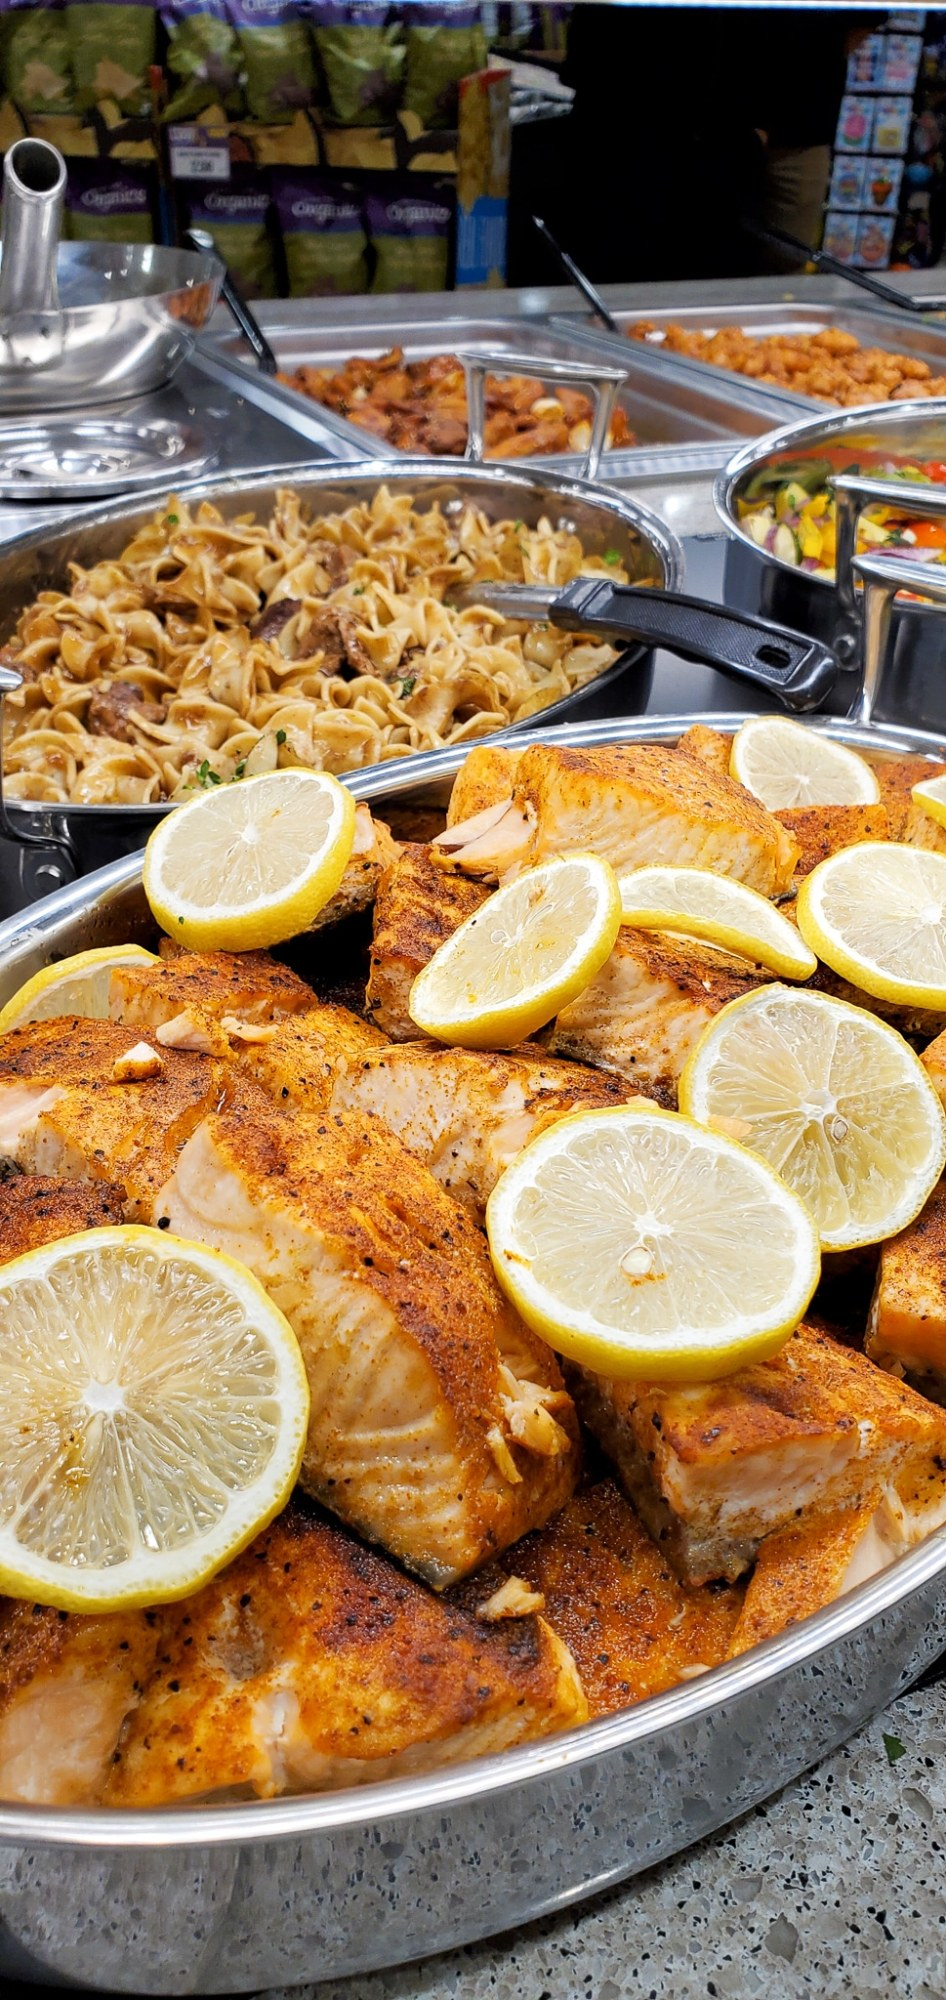 Harris teeter Hot Bar Fish. If your family is as busy as mine, then the Fresh Foods Market is a great place for you to grab freshly made meals and snacks. There is something for the whole family in this section, everything from Store-made Pizza to hand-rolled sushi.